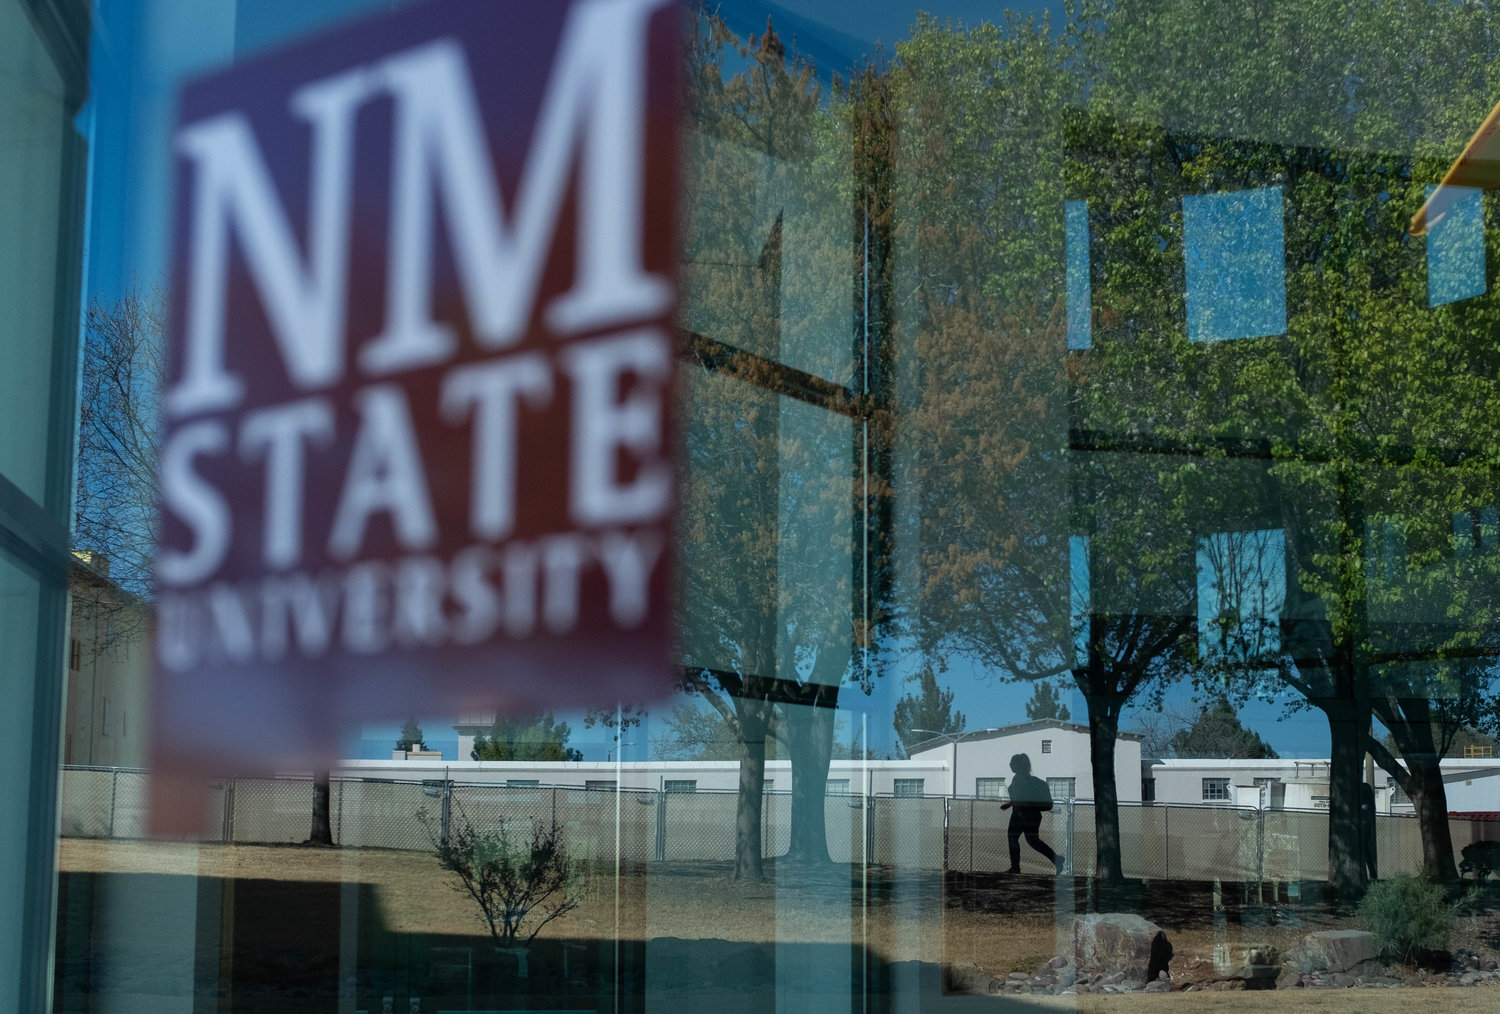 Nmsu Announces Community College Restructuring For Alamogordo Carlsbad And Grants Las Cruces Bulletin